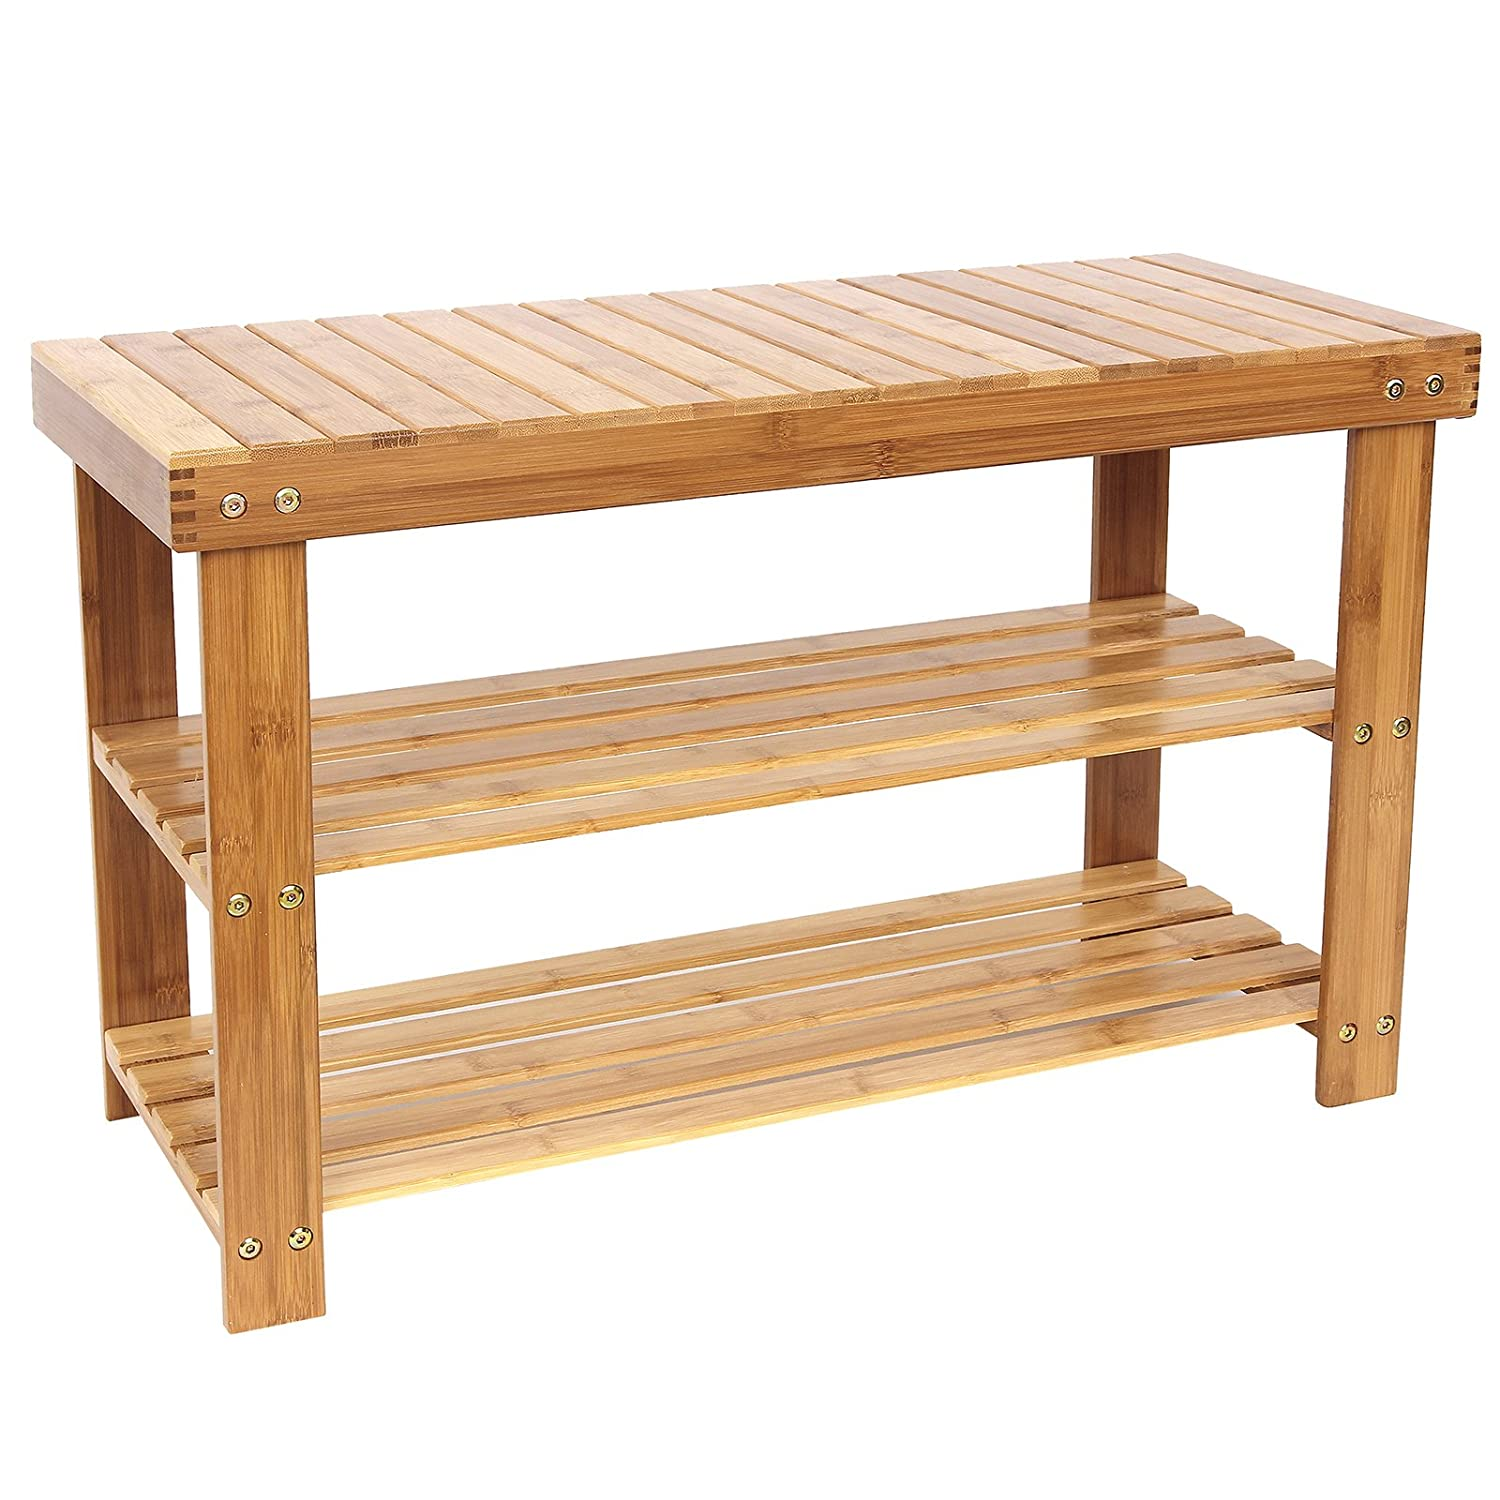 bamboo shoe bench 2 tier shoe storage racks shelf organizer ulbs04n